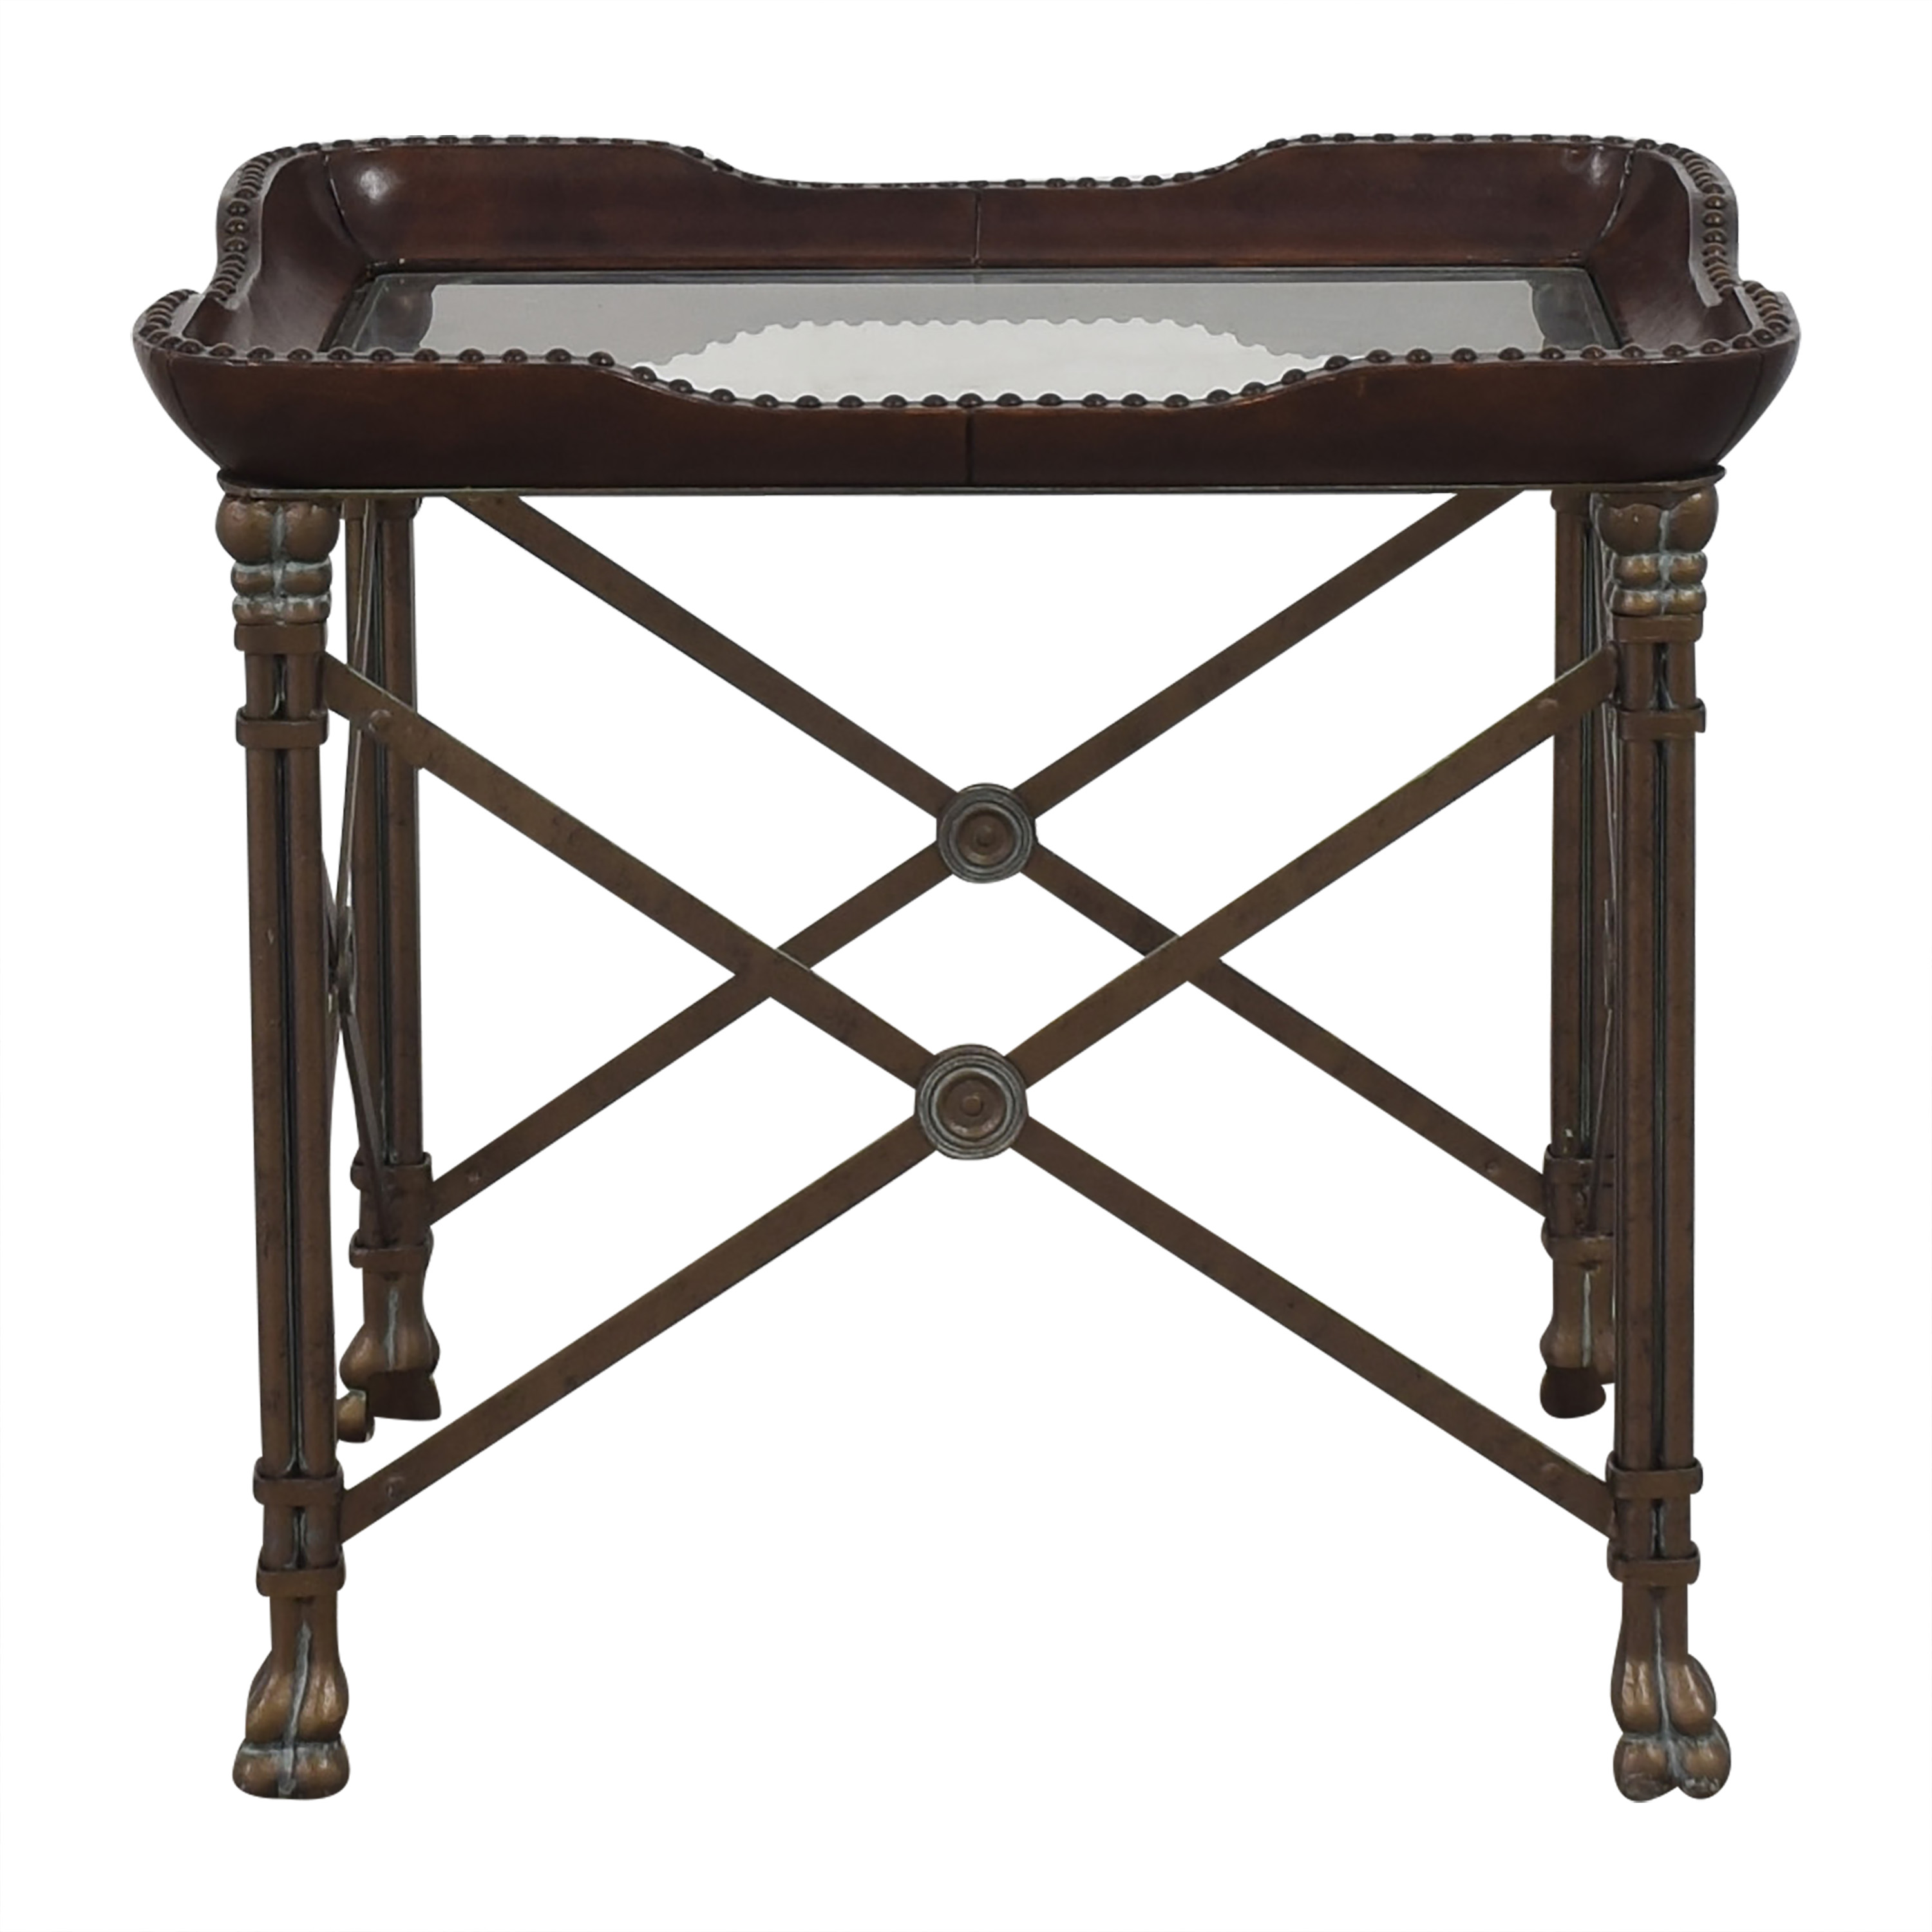 Lillian August Lillian August Decorative Side Table brown